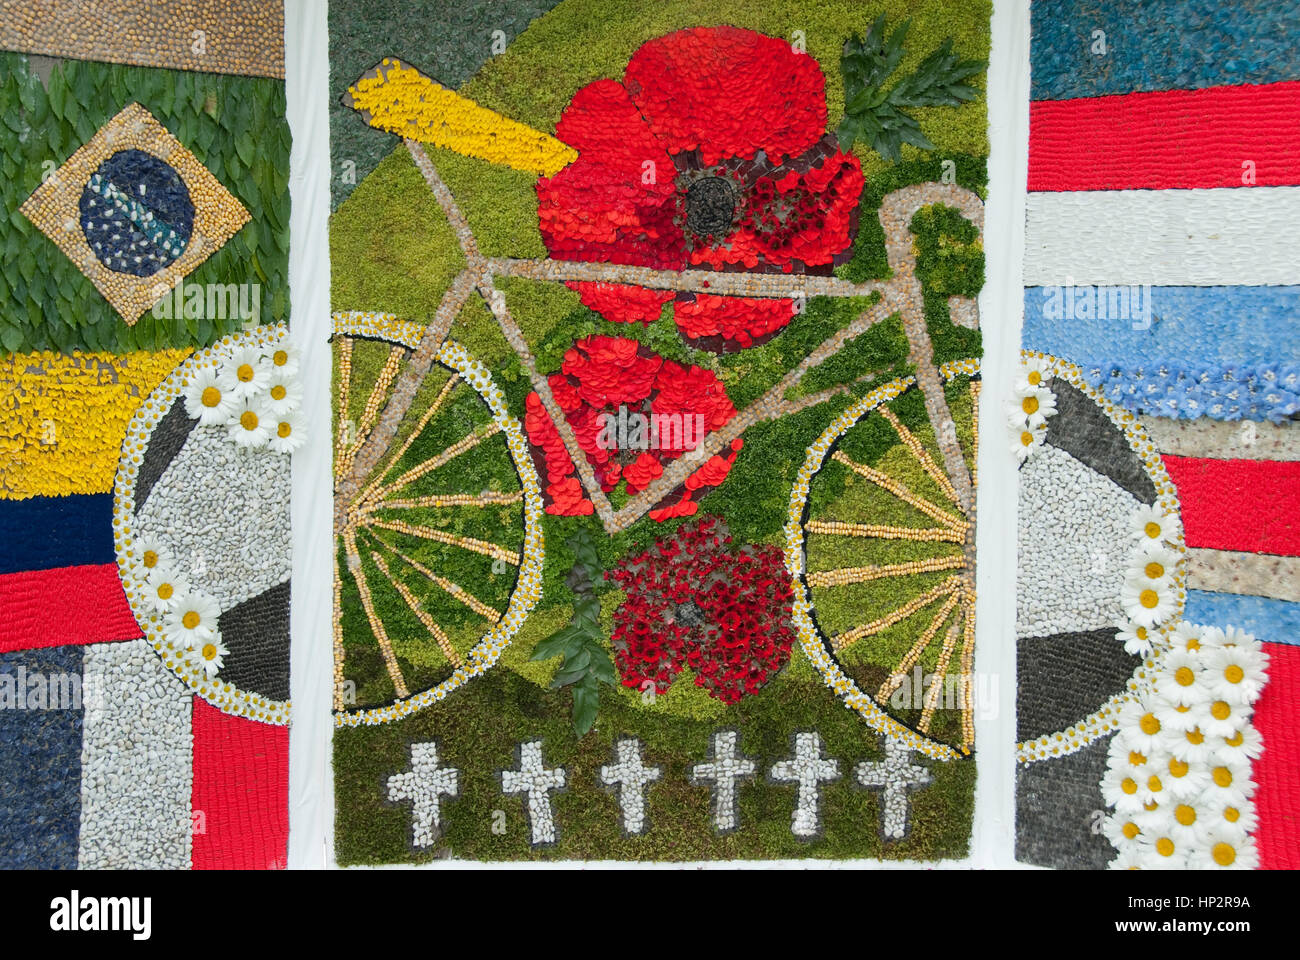 Derbyshire, UK - July 20 2014 - Well dressings commemorate war & celebrate Le Tour on 20 July at Great Longstone, - Stock Image